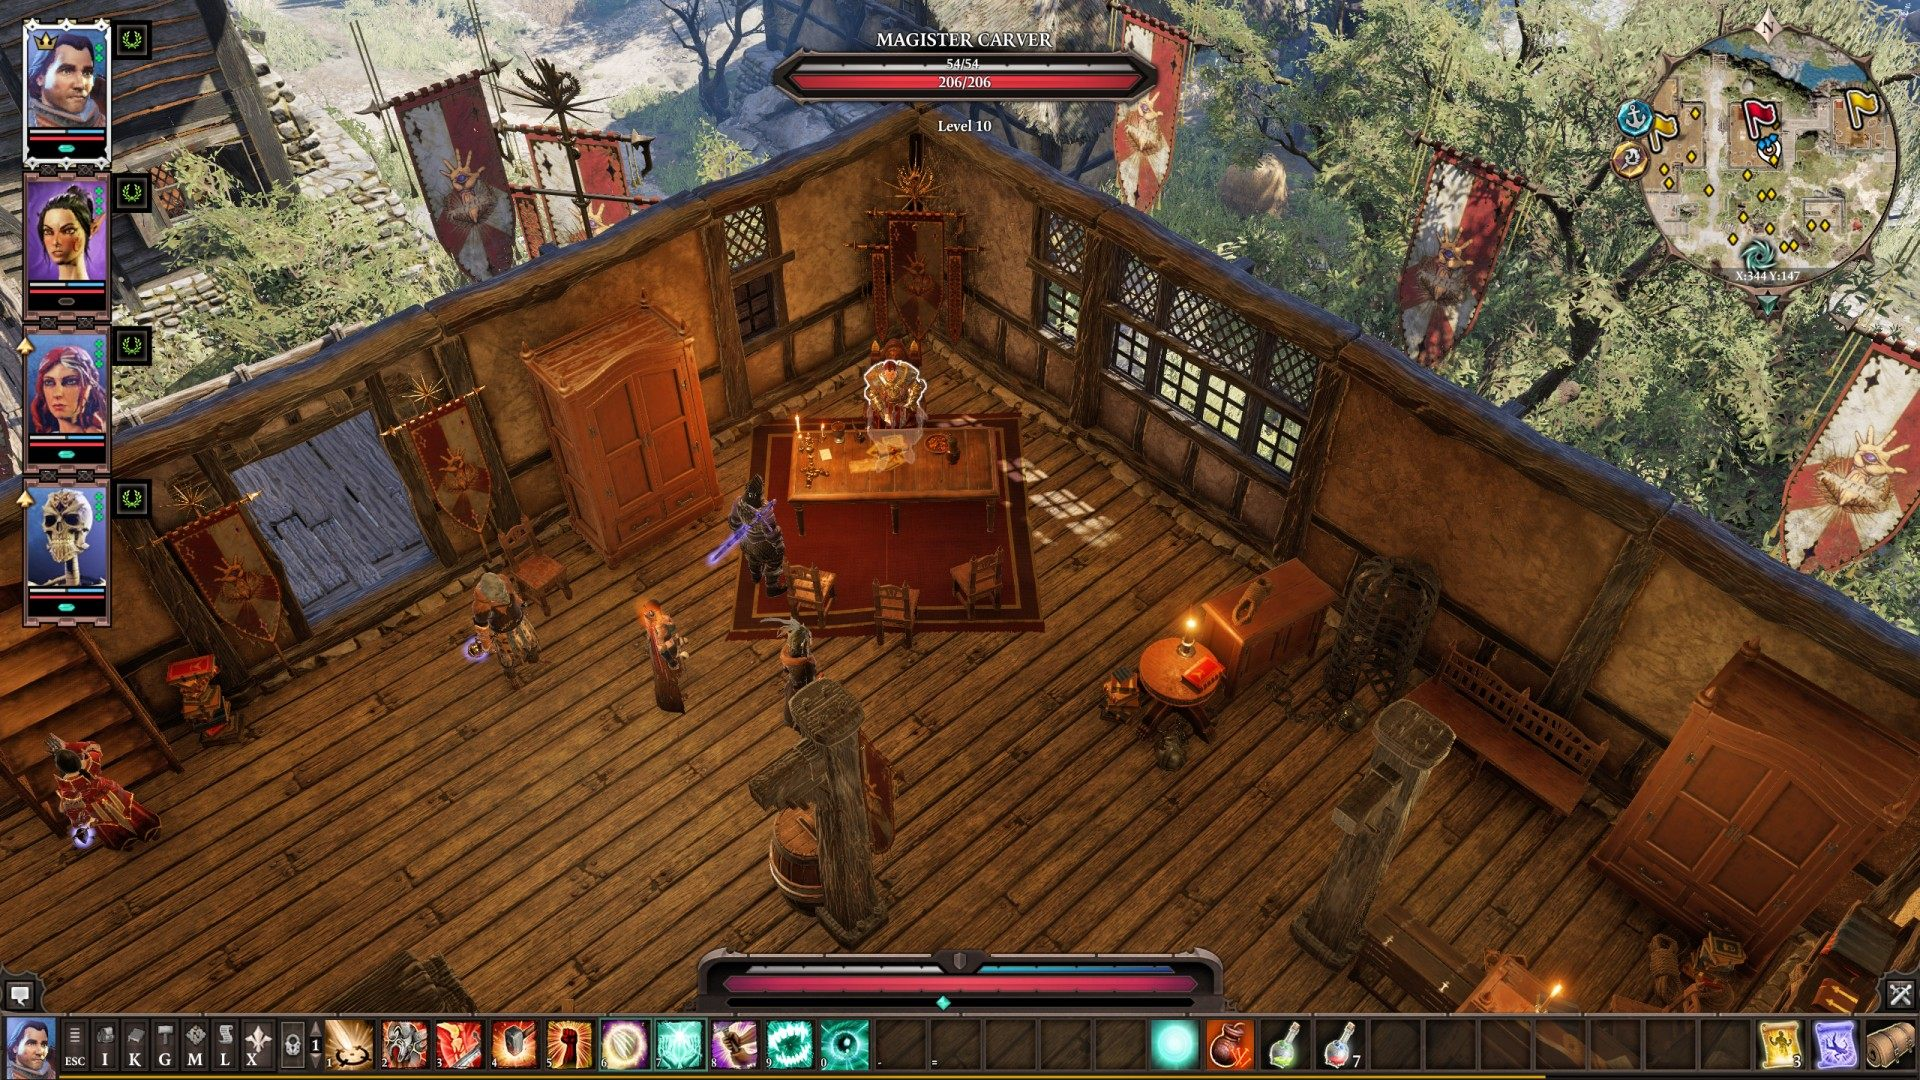 The missing magisters divinity original sin 2 quest start 1 magister investigating officer forumfinder Choice Image